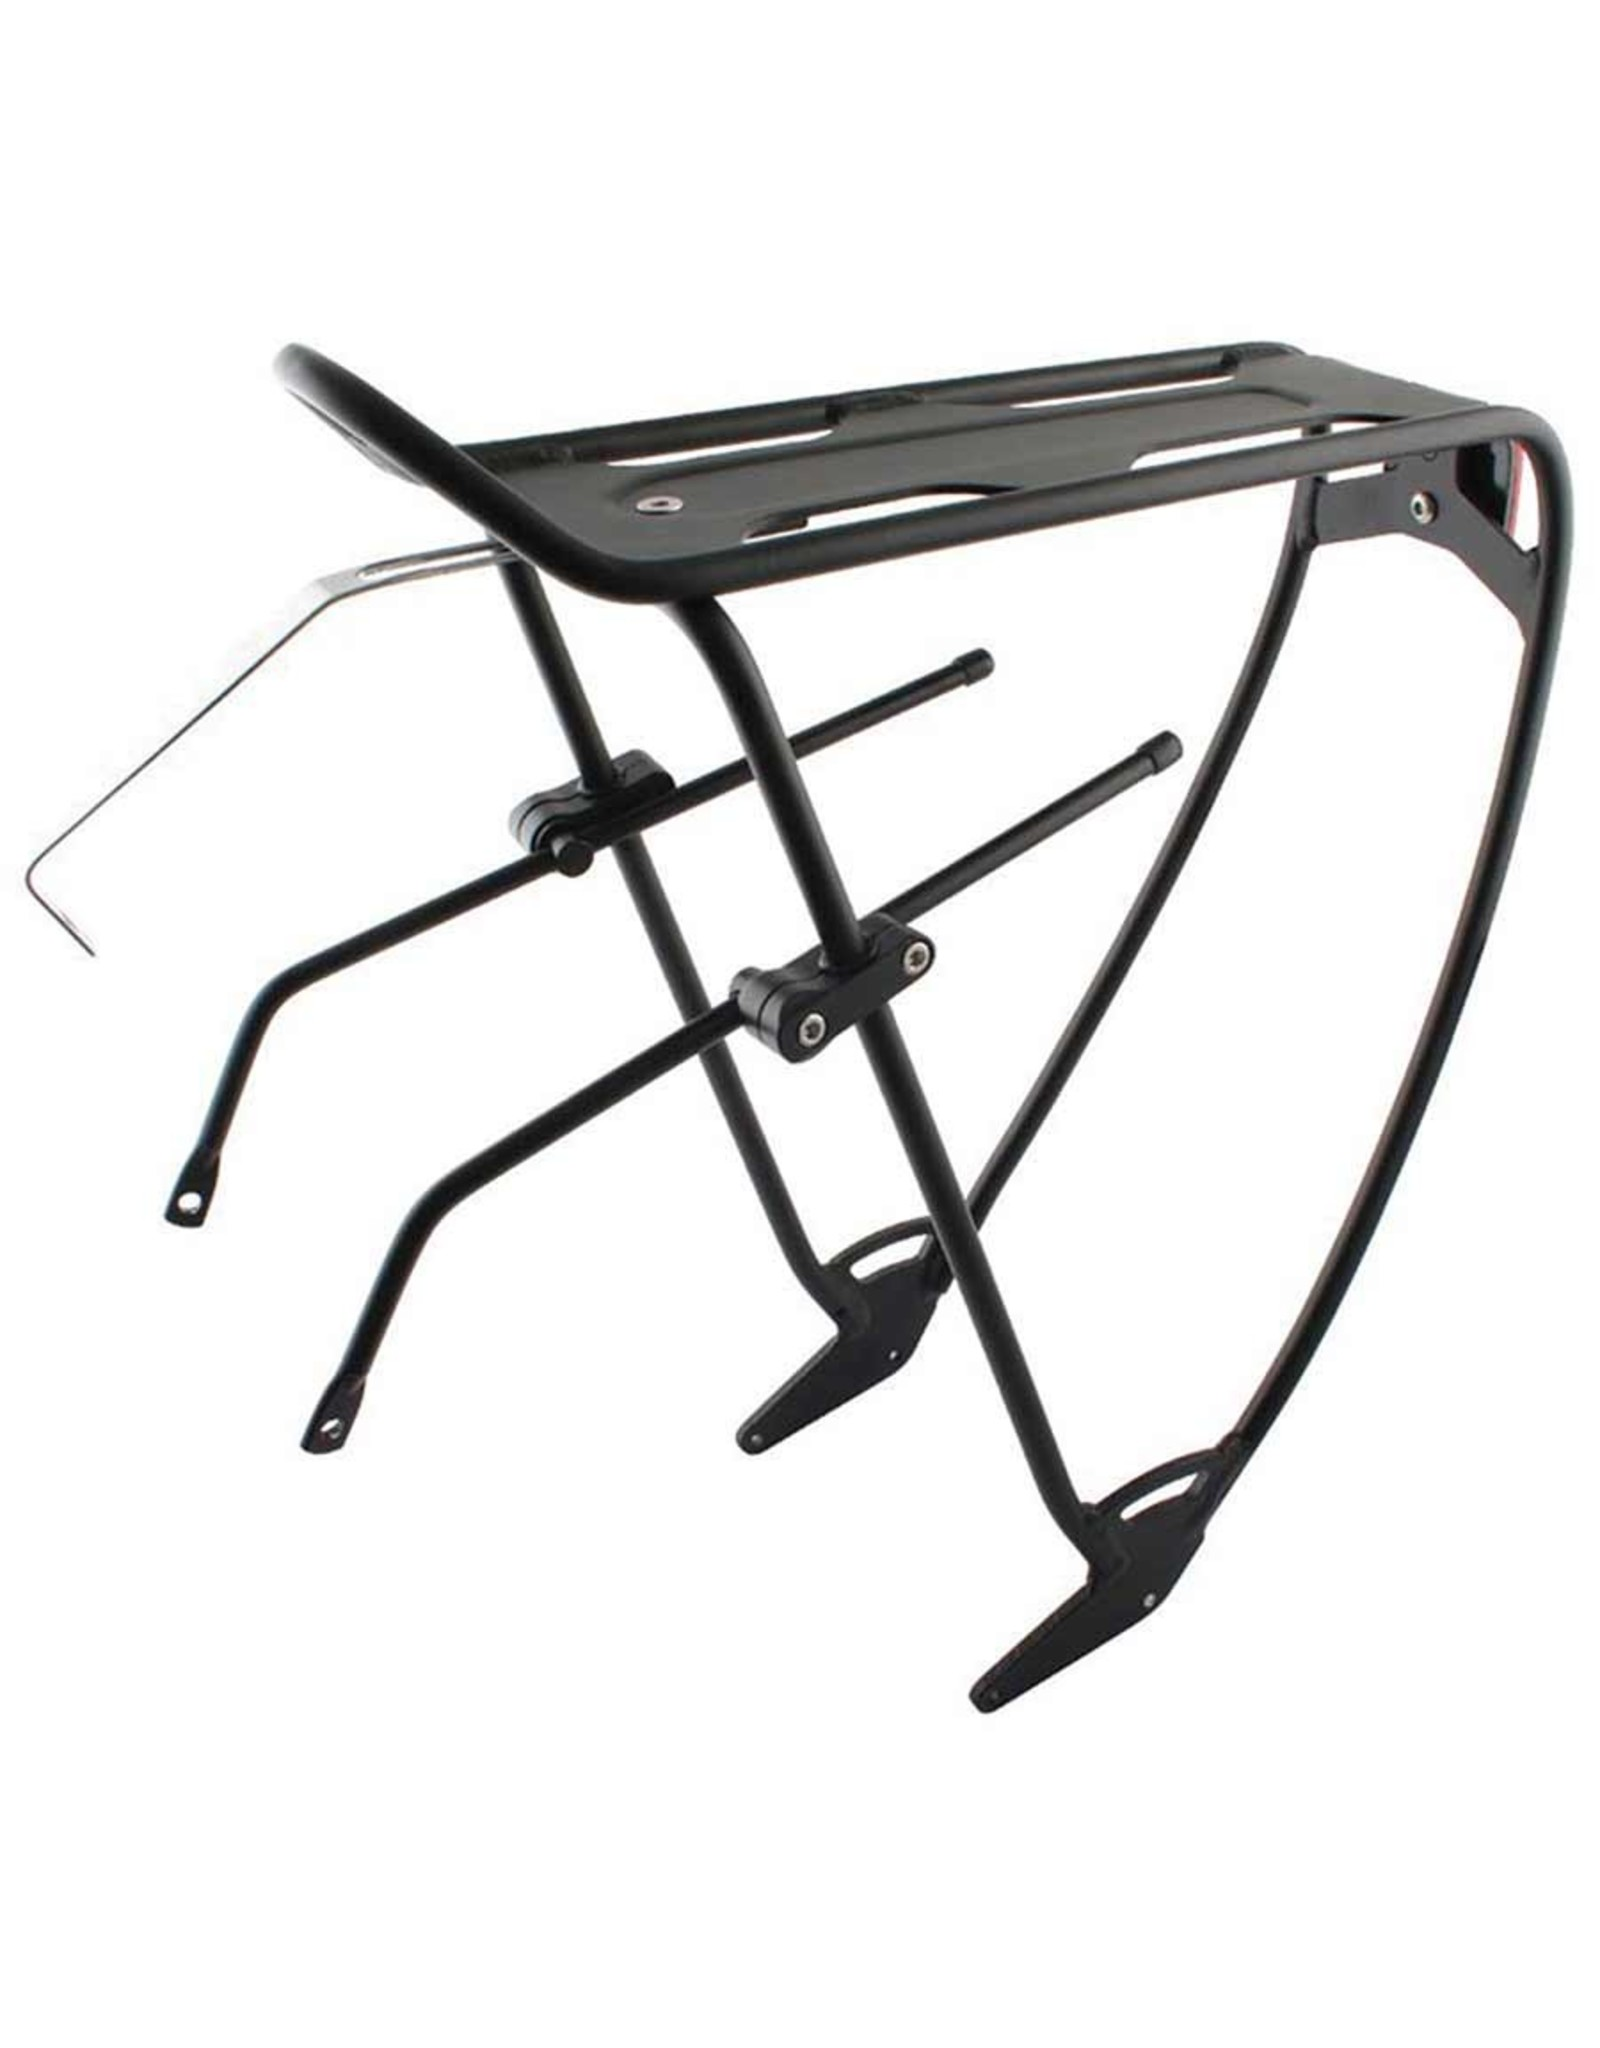 Robin, Rear rack, With top plate, Adjustable sliders, Black